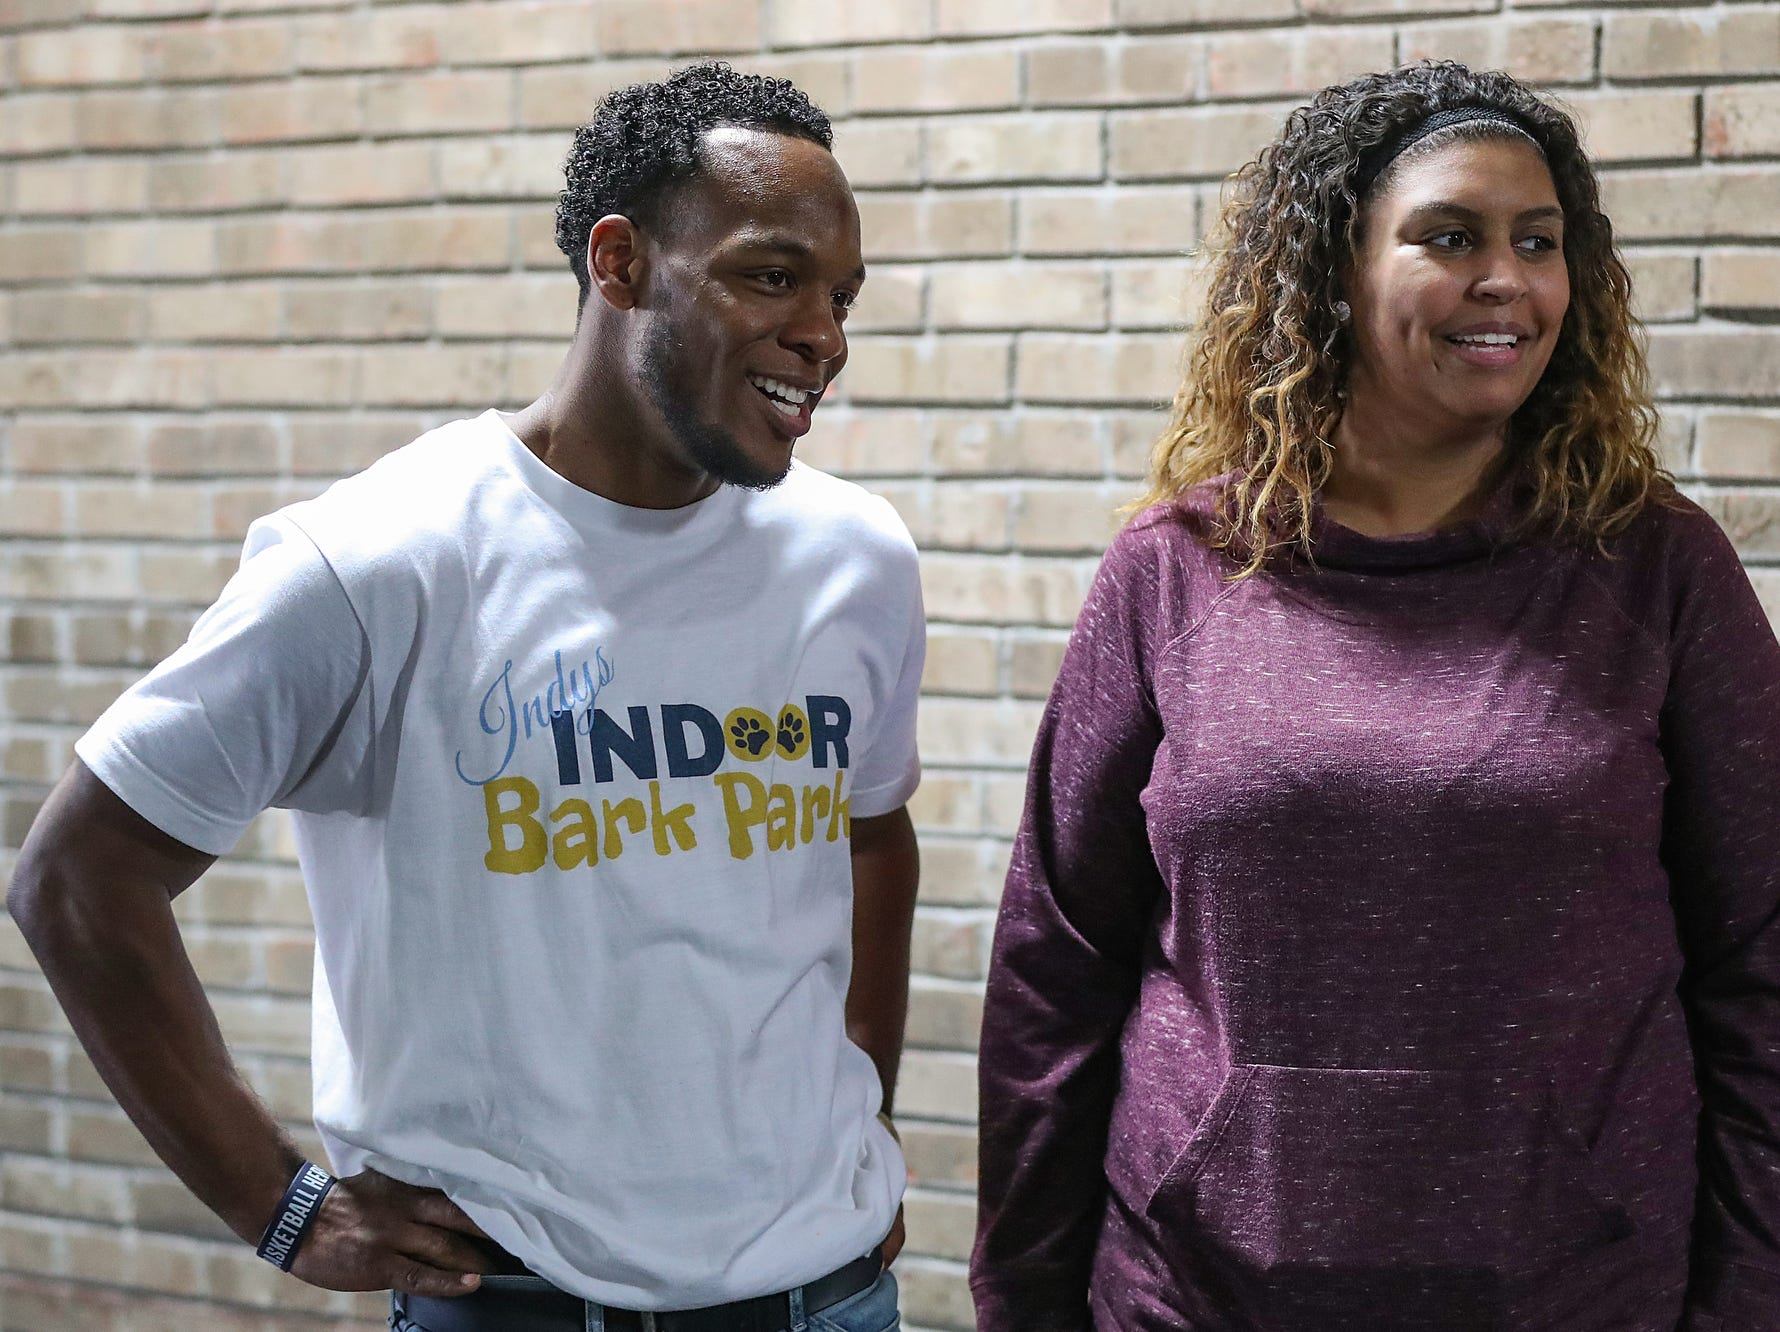 At left, owner Darius Smith talks with guests during the grand opening of Indy's Indoor Bark Park in Indianapolis, Saturday, Jan, 5, 2019. The large indoor space offers owners a place to exercise their dogs regardless of the weather. Membership options include single-day, multi-day and annual passes.